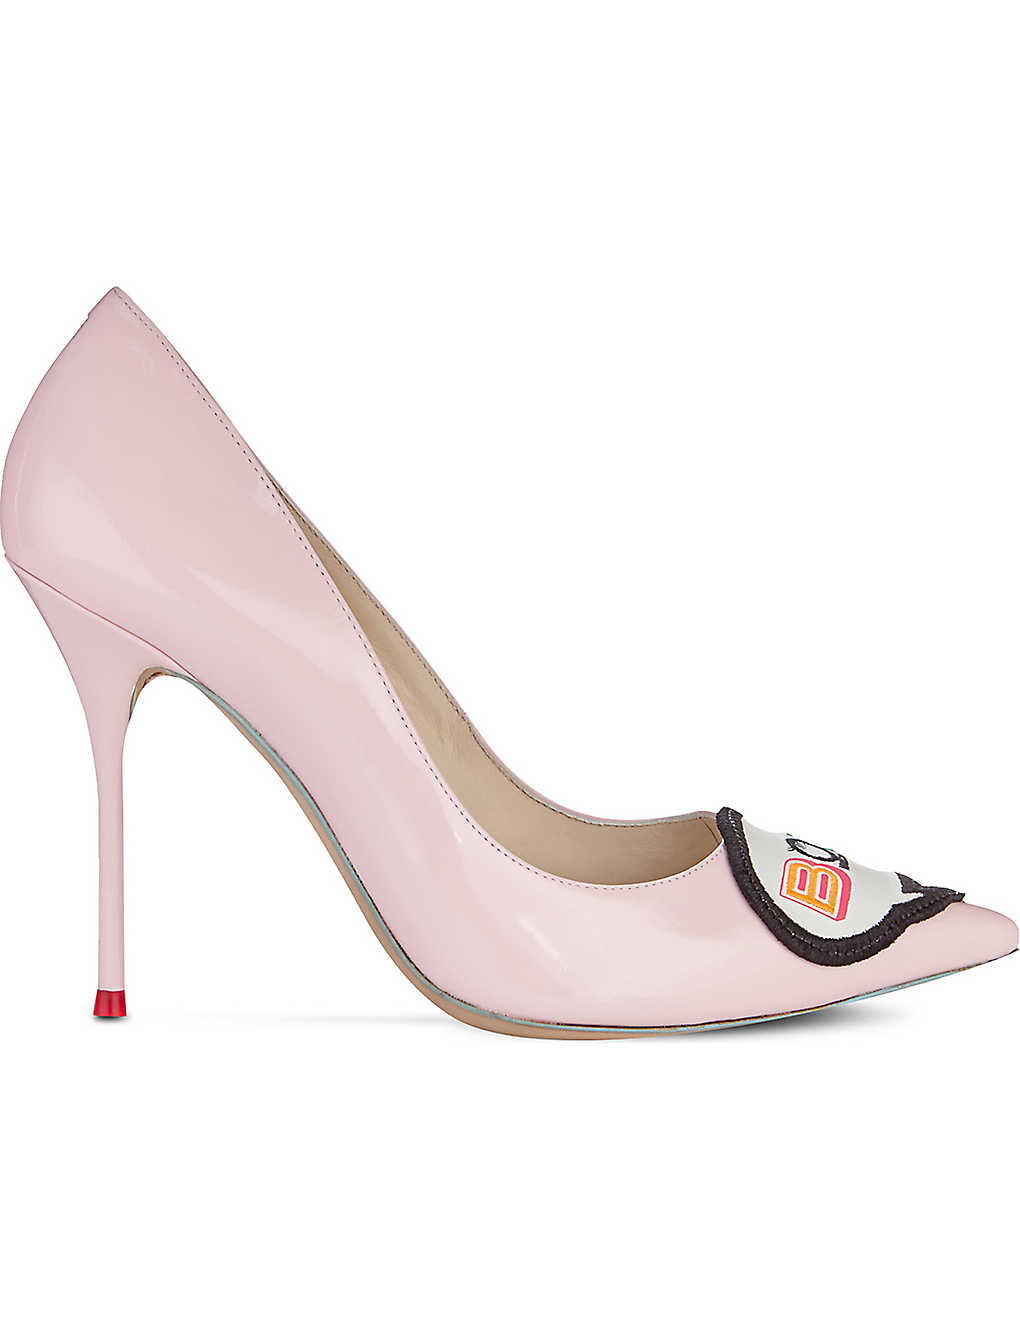 1cc03098835 SOPHIA WEBSTER - Boss Lady patent-leather pumps